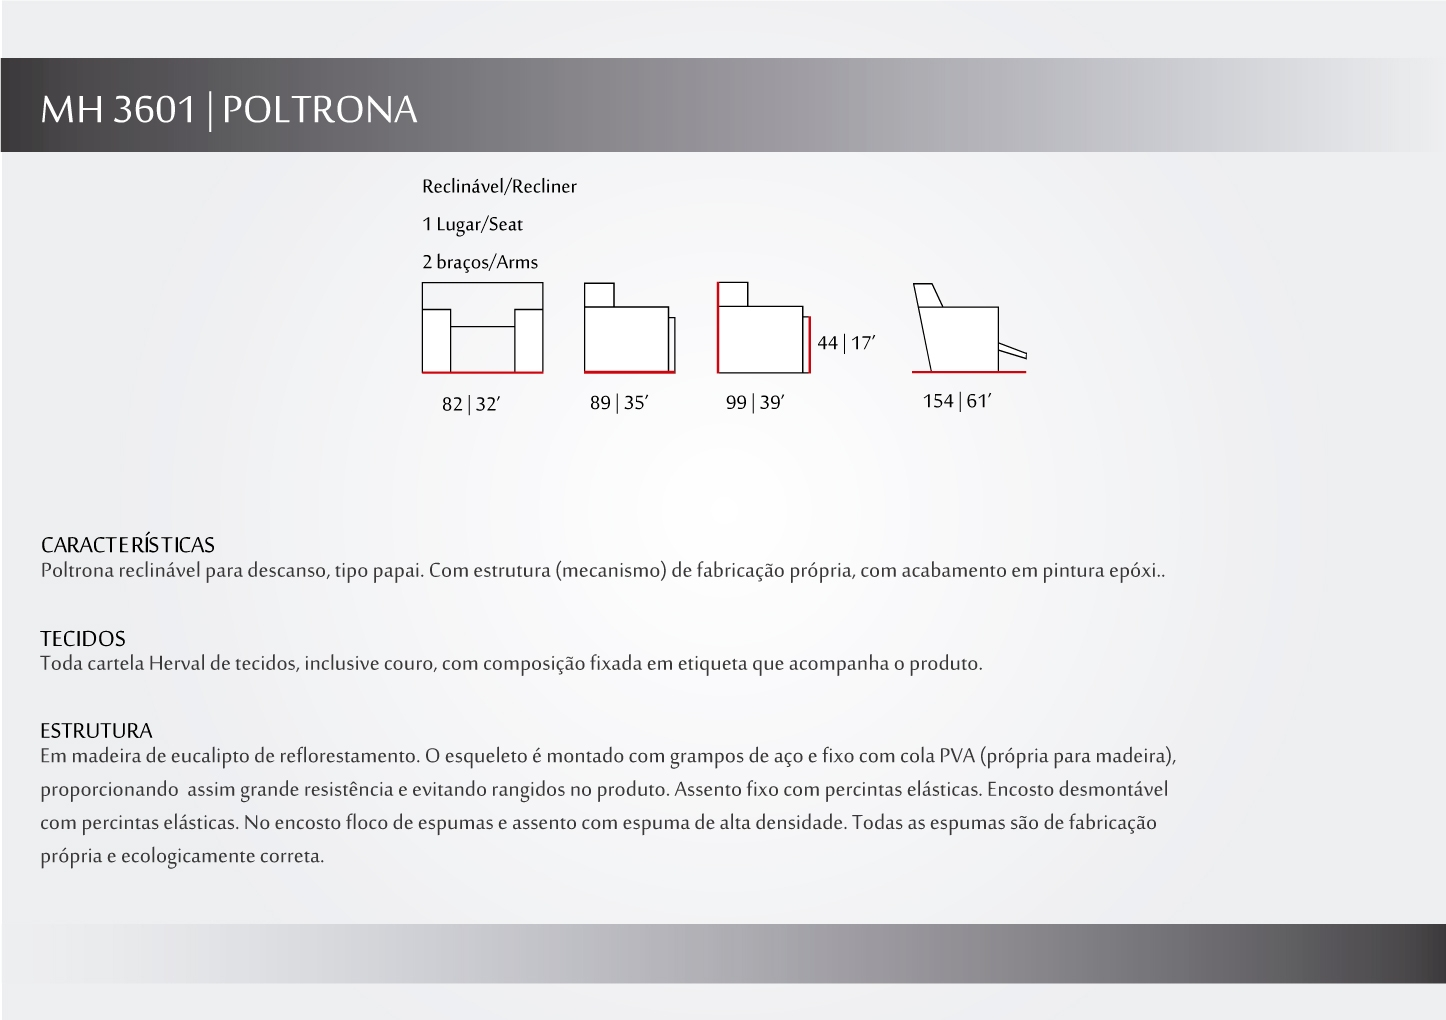 Poltrona Reclinavel - mh3601